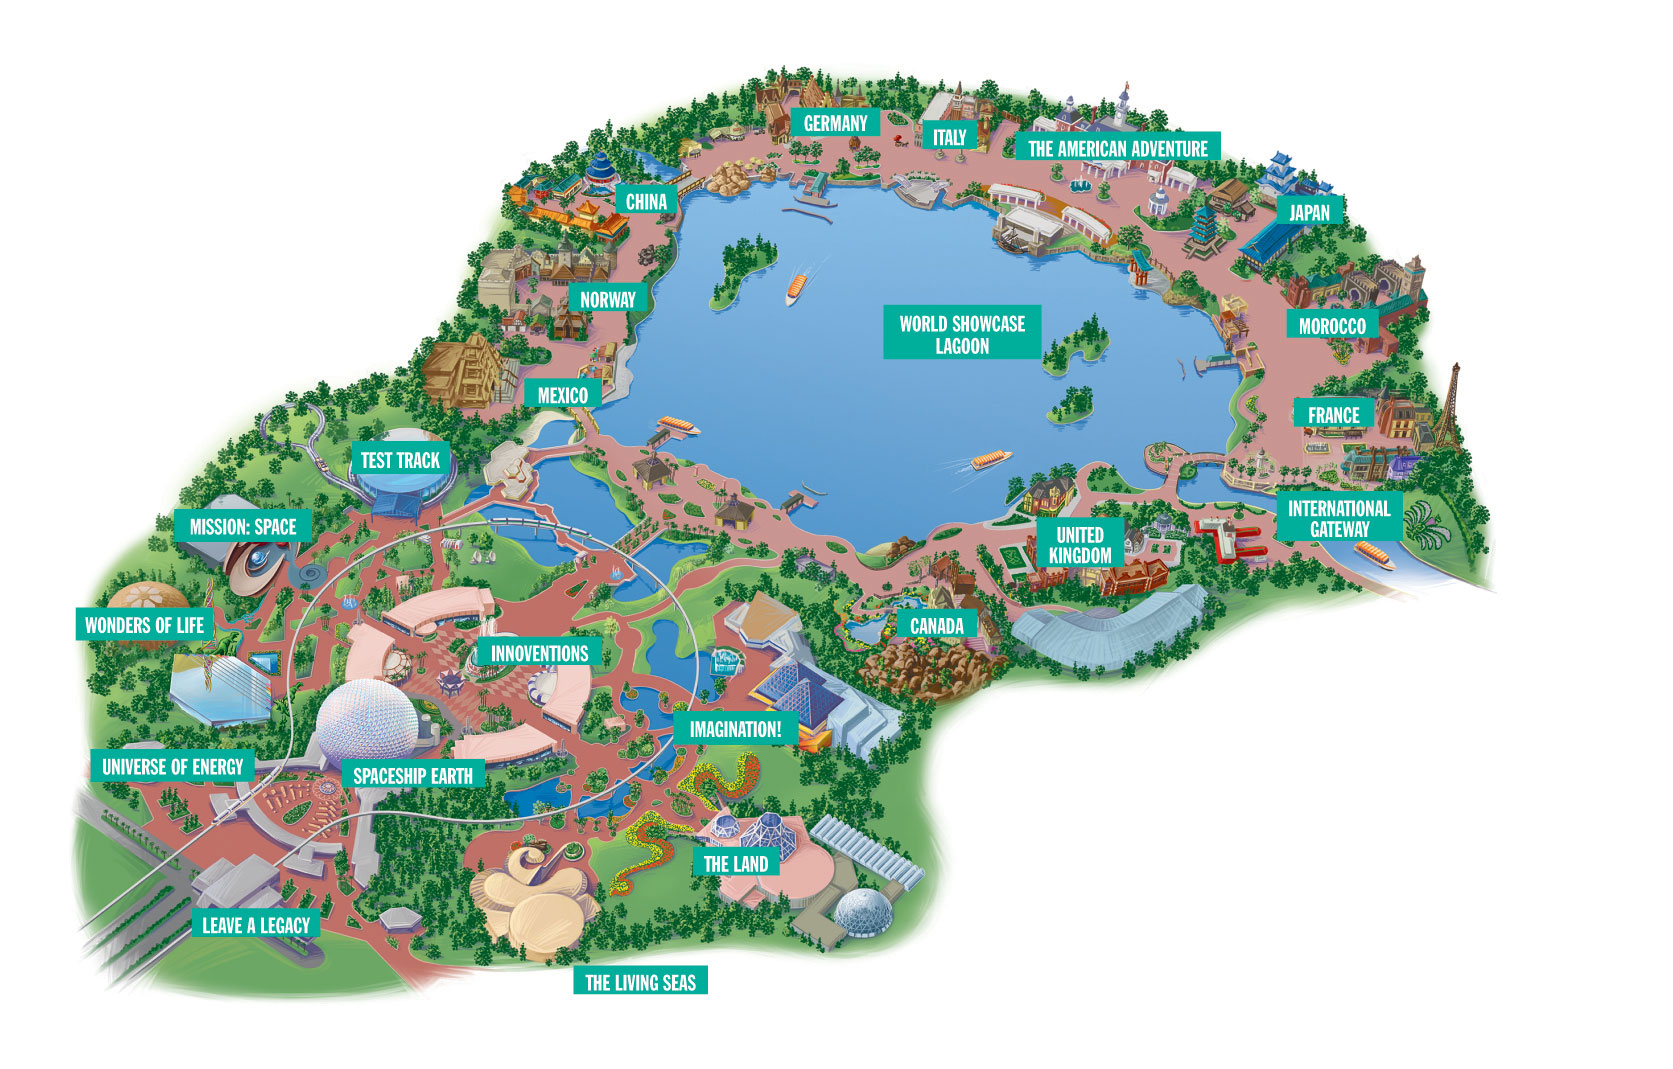 Epcot food and wine festival guide and map now available diszine disney gumiabroncs Images